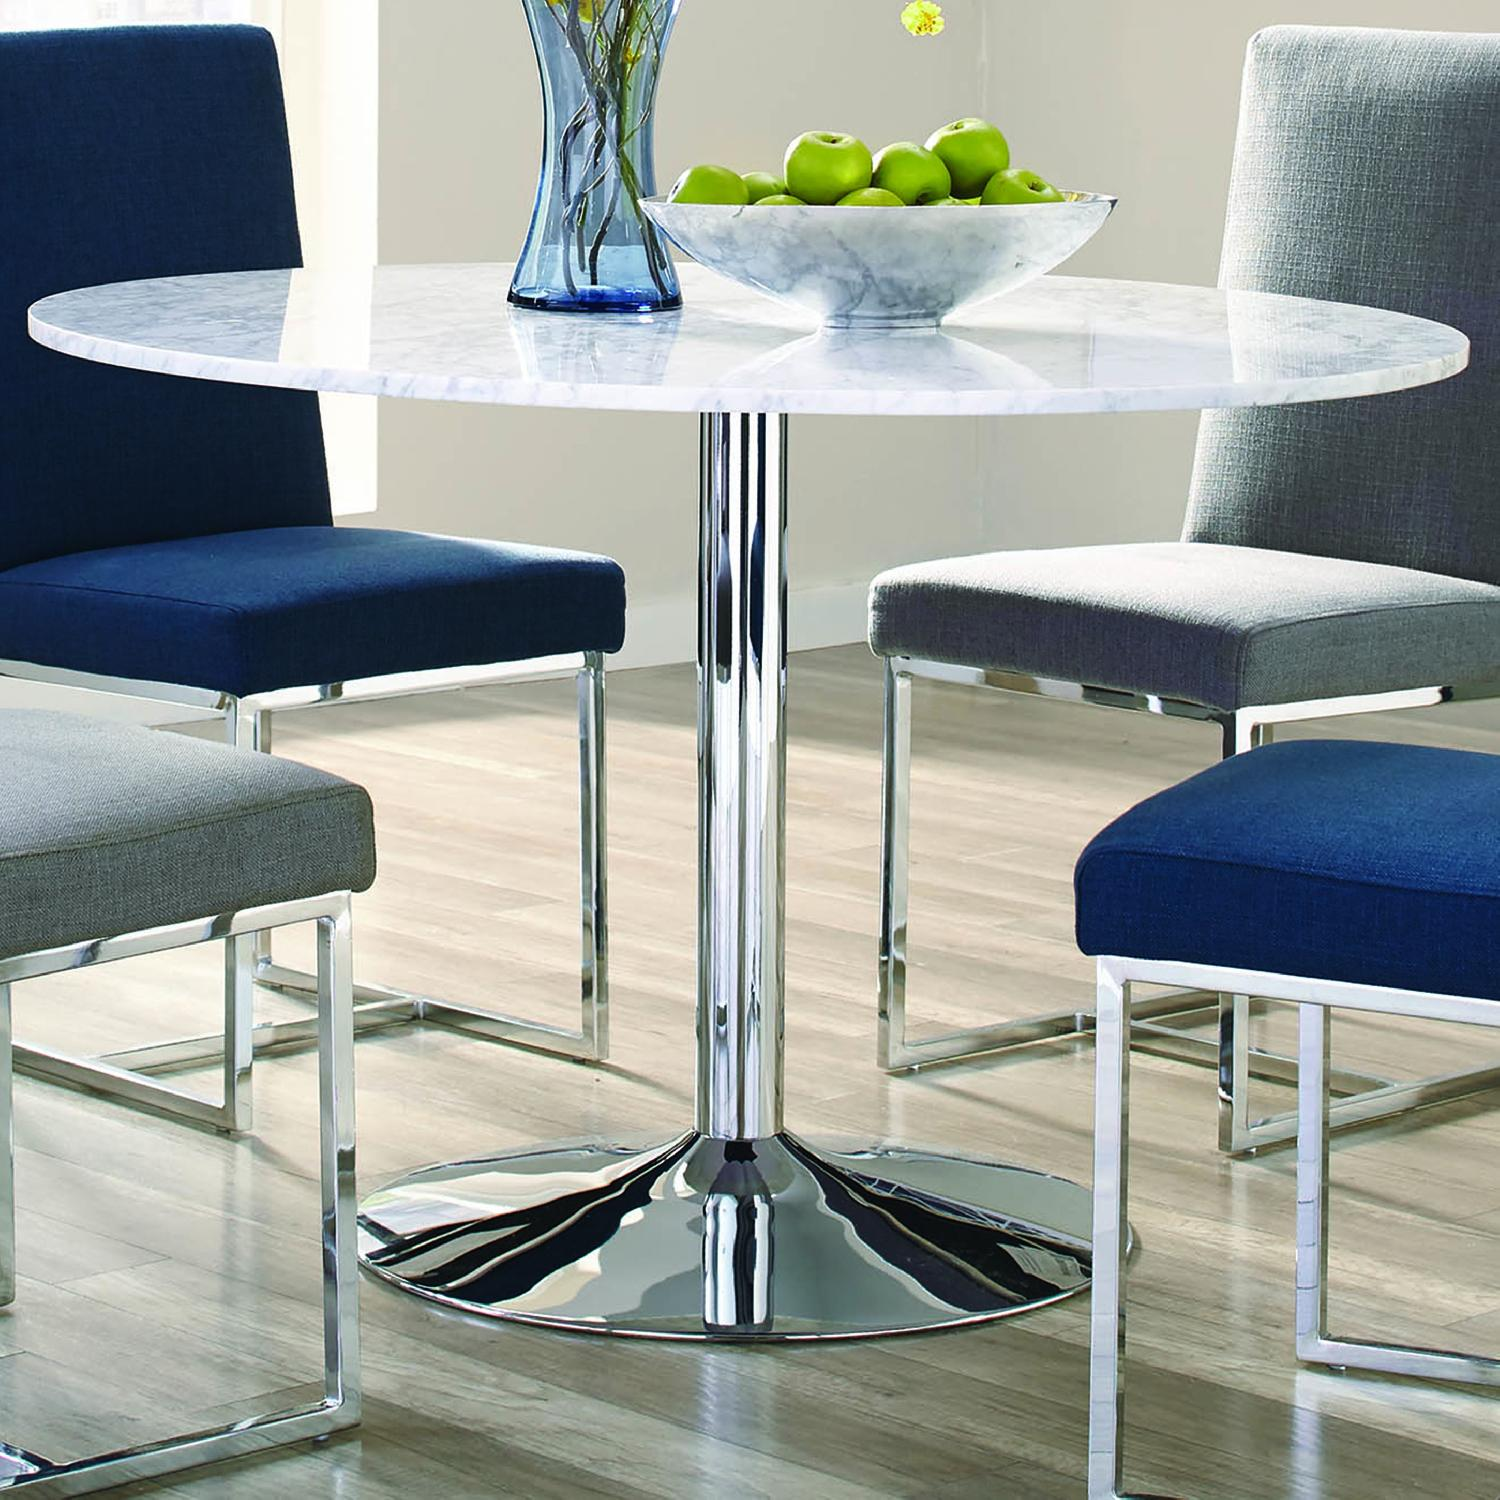 Modern Italian Marble Top Dining Table w/ Chrome Base - image-1